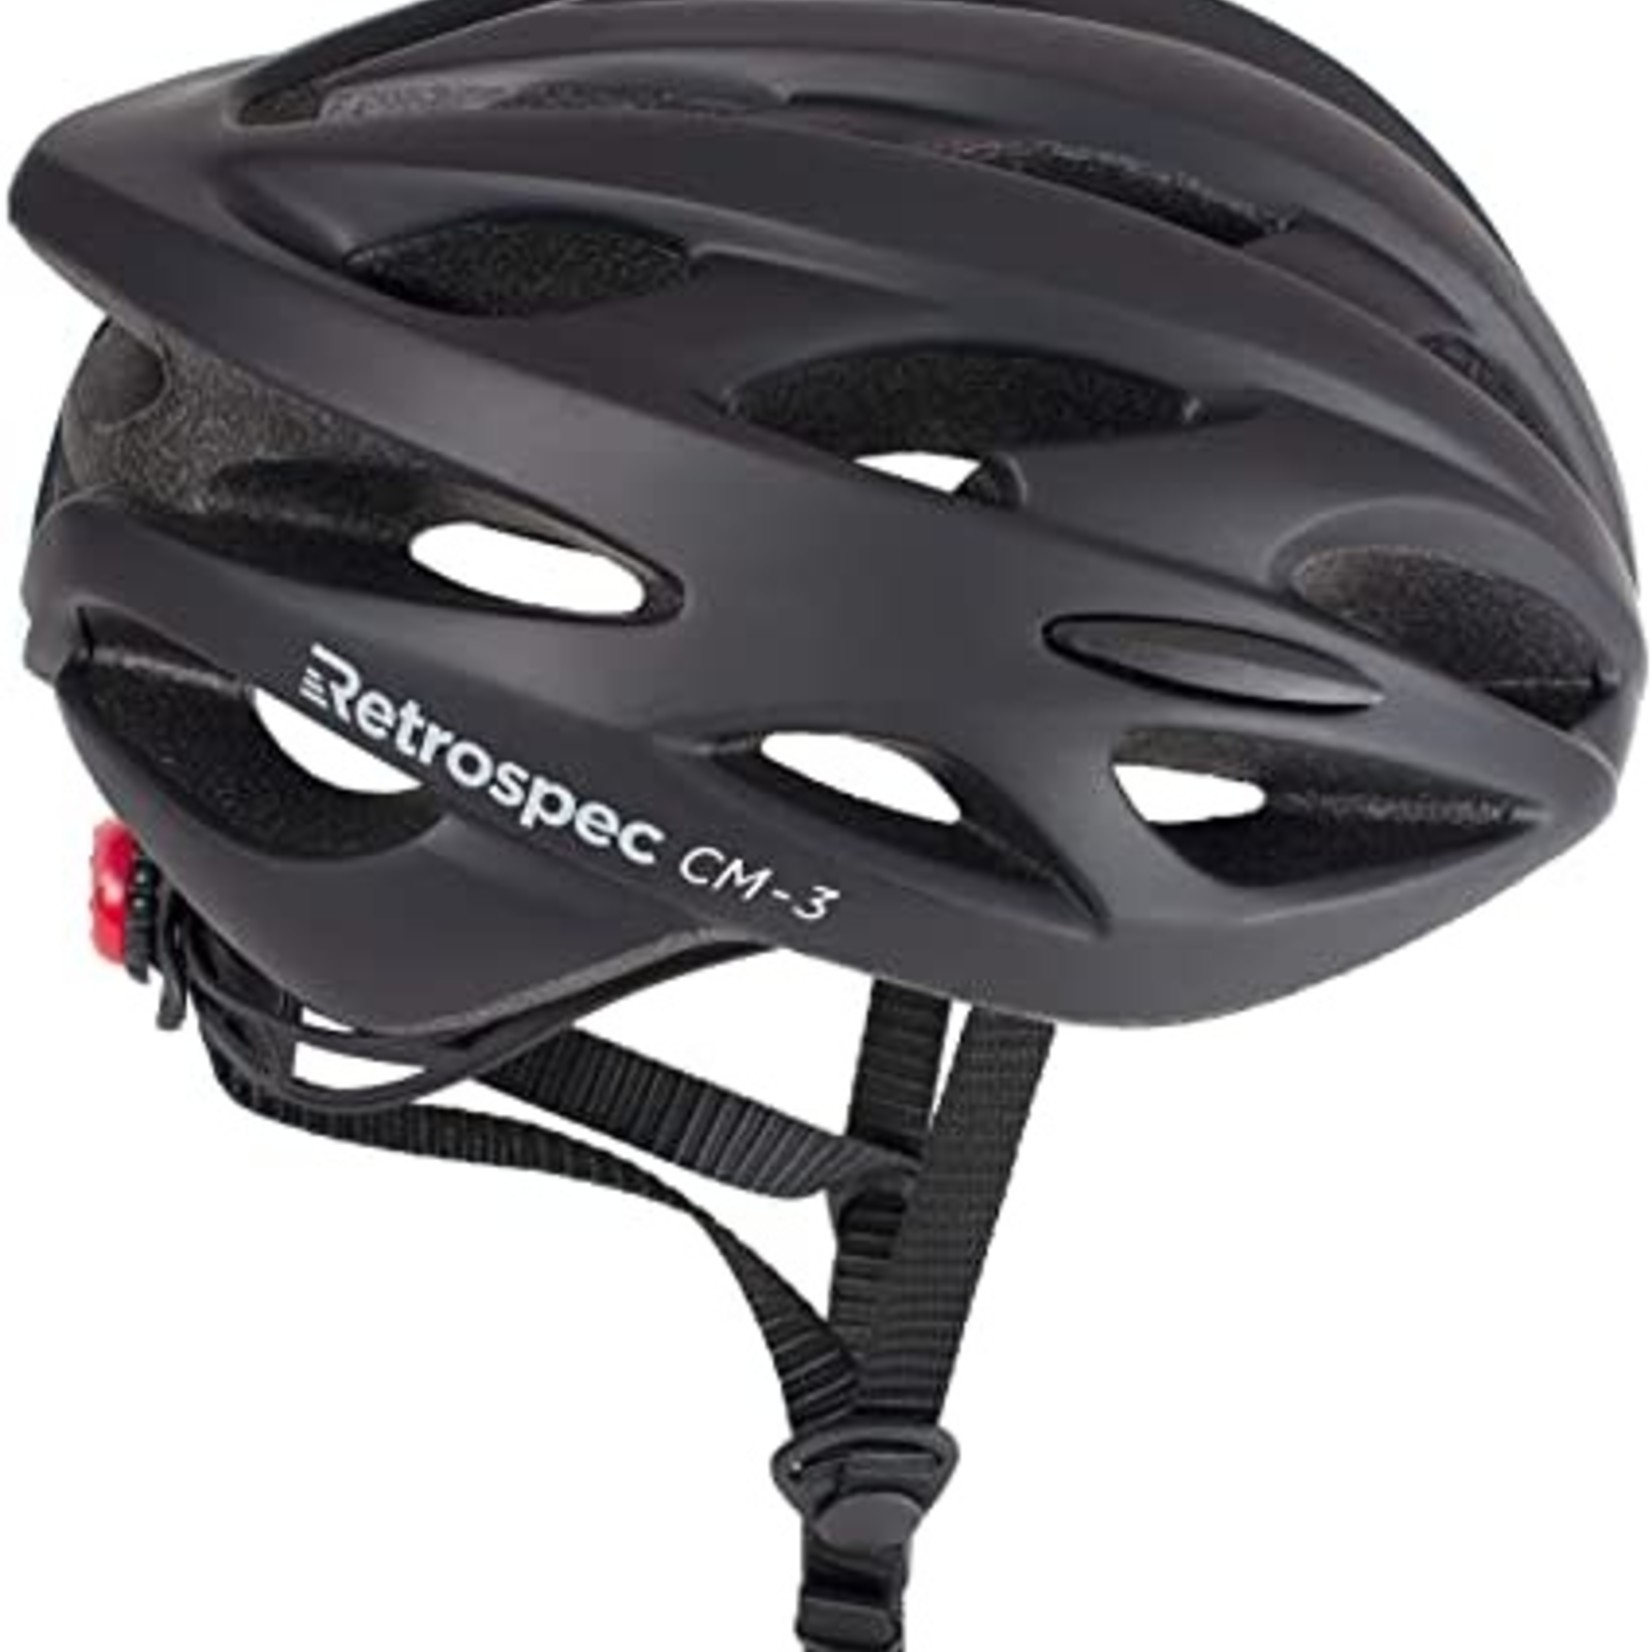 Retrospec CM-3 Road Helmet- all colors